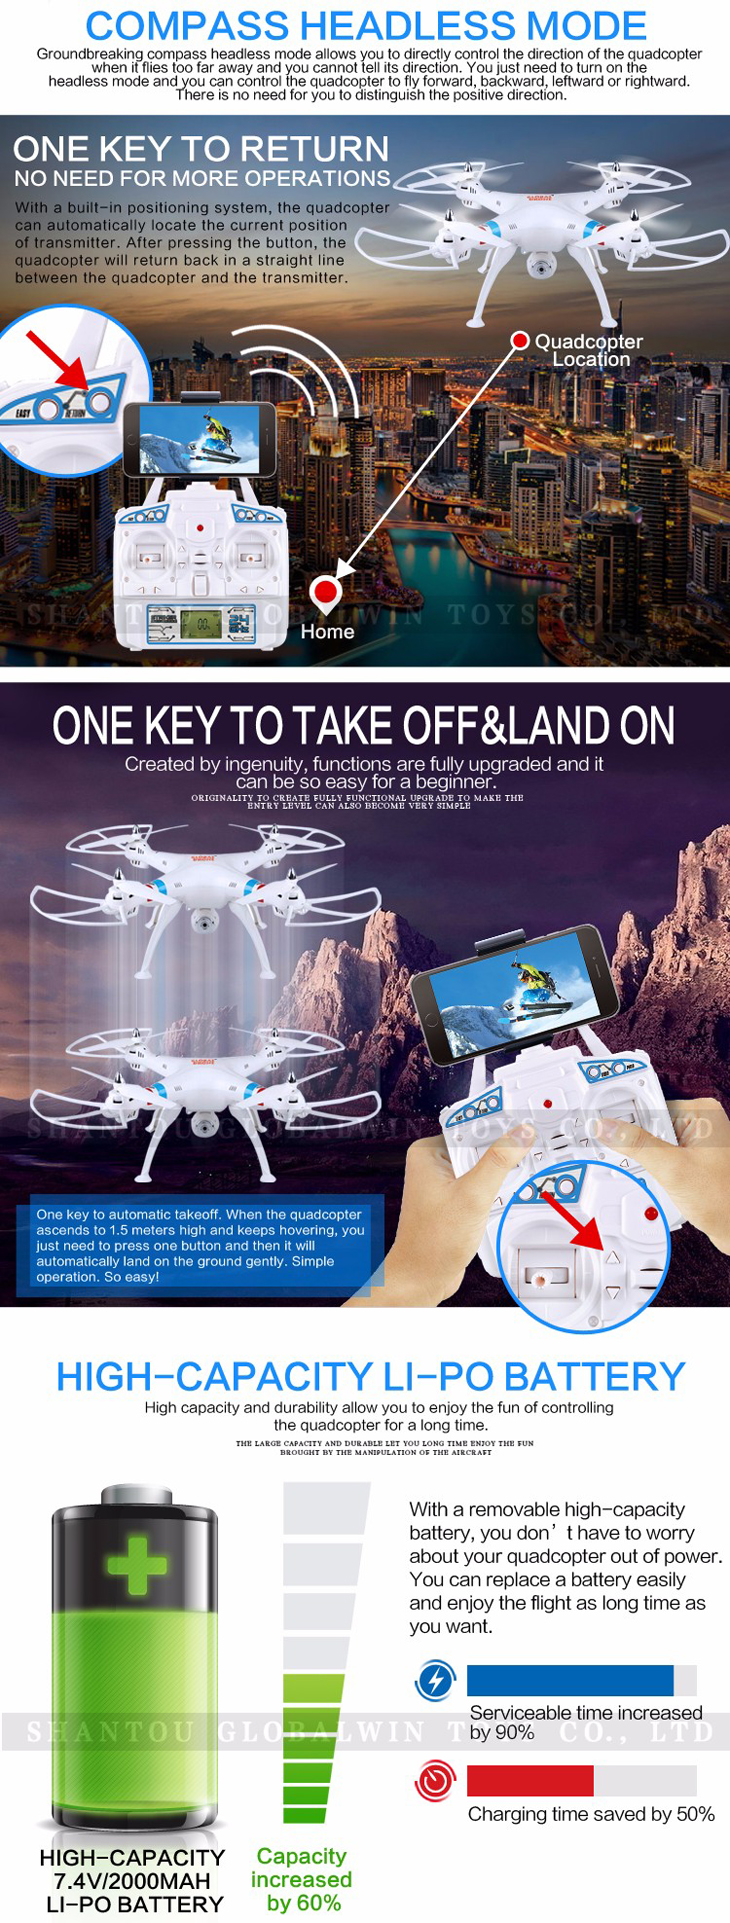 7Global Drone GW180 Dron with Camera WIFI HD FPV Hovering Quadrocopter Can Carry 4K Camera Drones